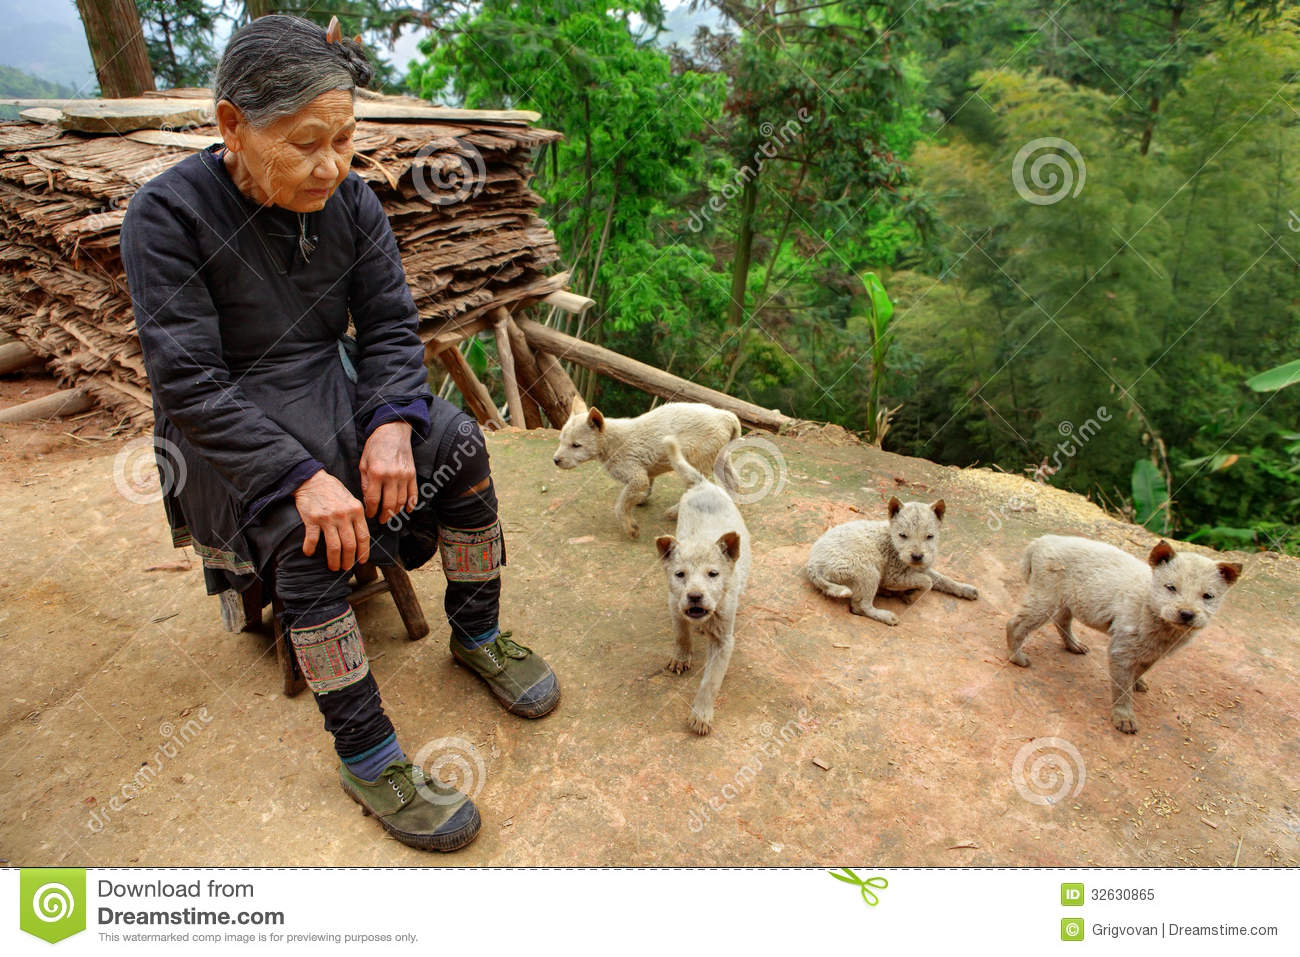 Southwest Home Plans Guizhou Province China Older Chinese Lady In Green